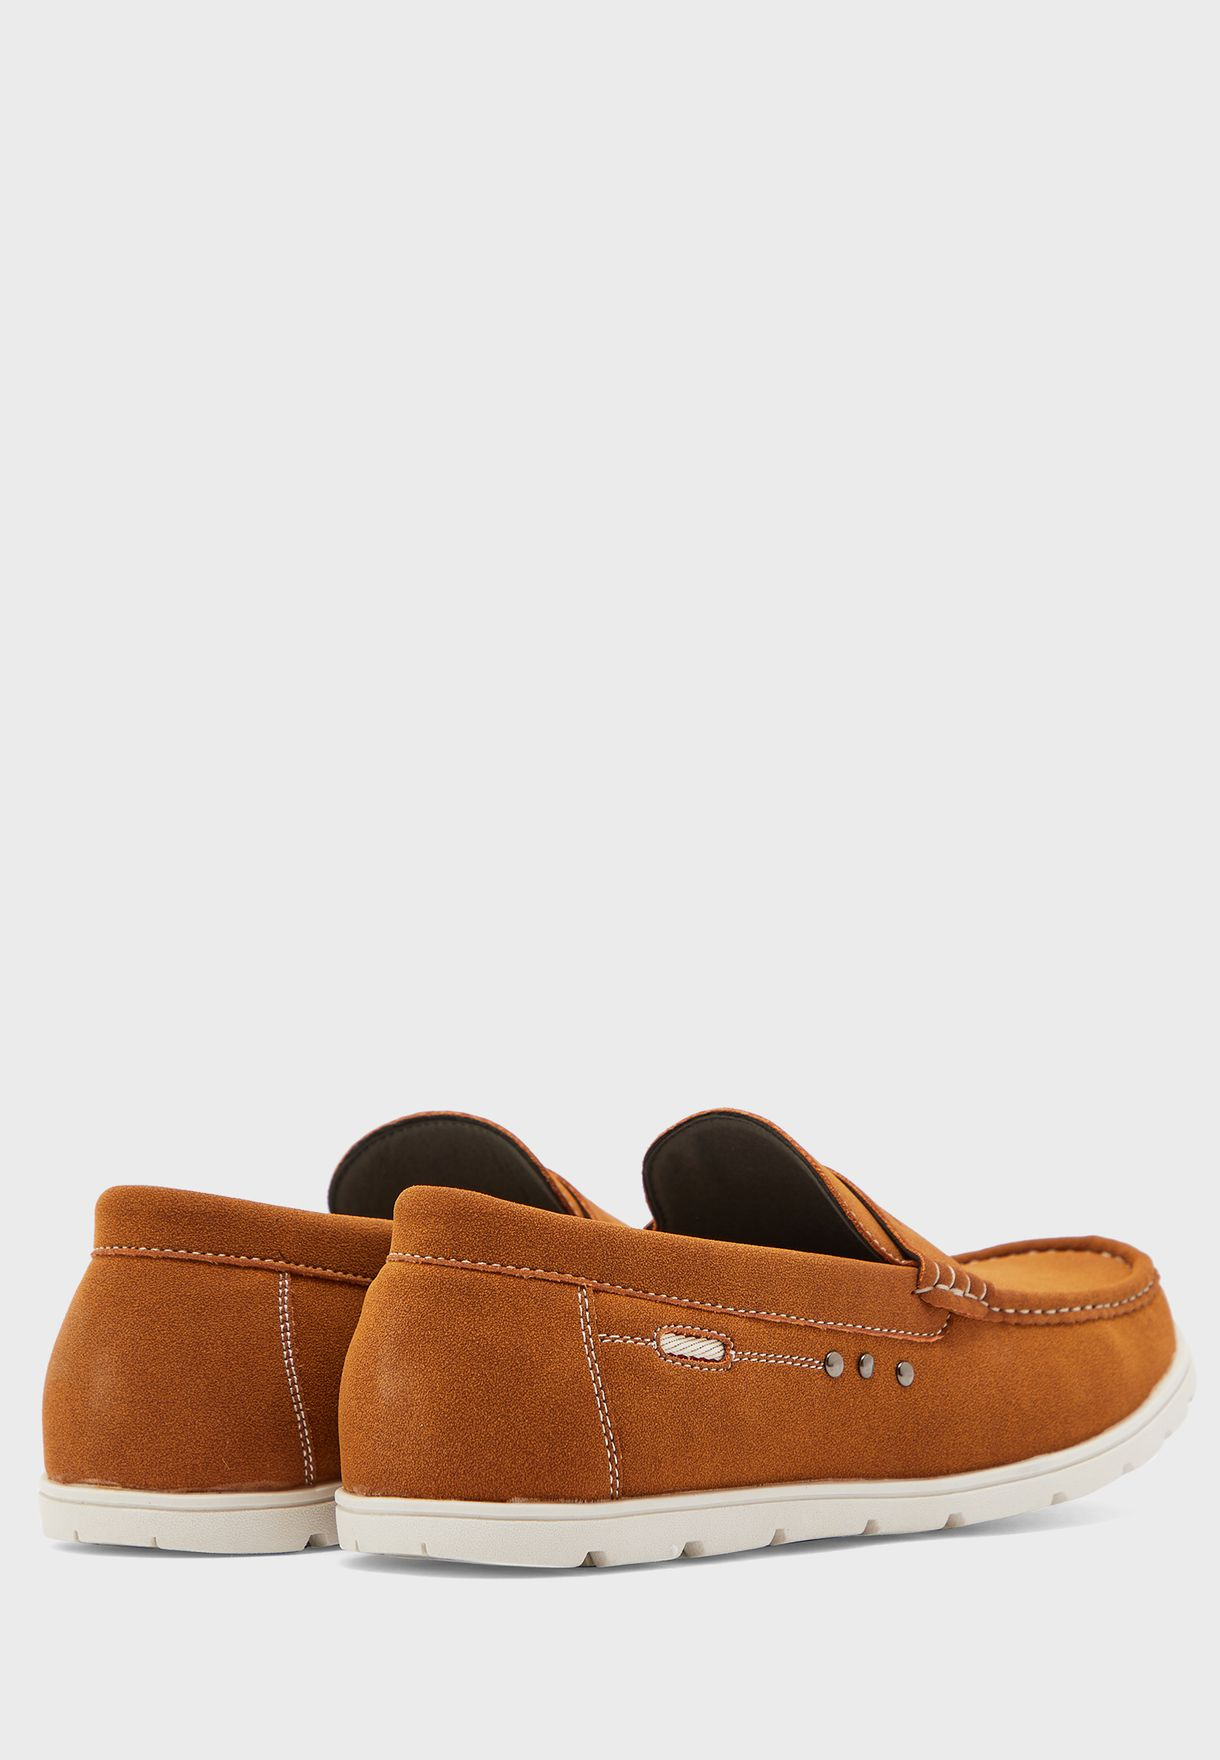 Faux Suede Comfort Insole Casual Slip Ons